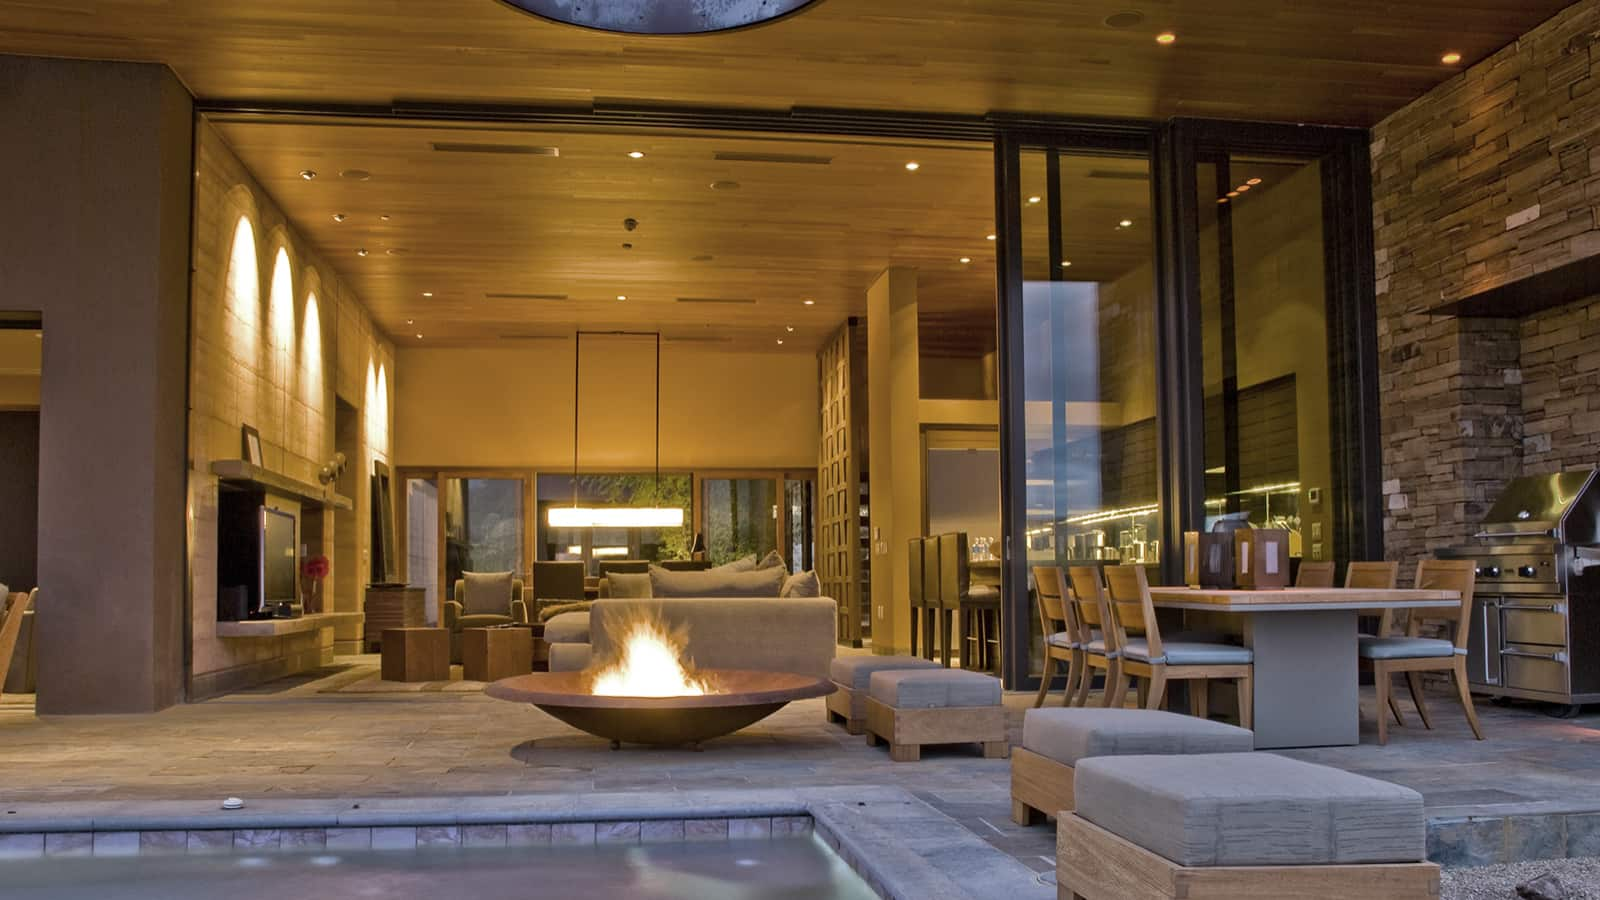 You can now earn and use Hyatt points at Miraval. You'll earn 5 points for every dollar spent at Miraval. And you can redeem points for free stays. | earn and use Hyatt points at Miraval | travel hacking | TravelingWellForLess.com